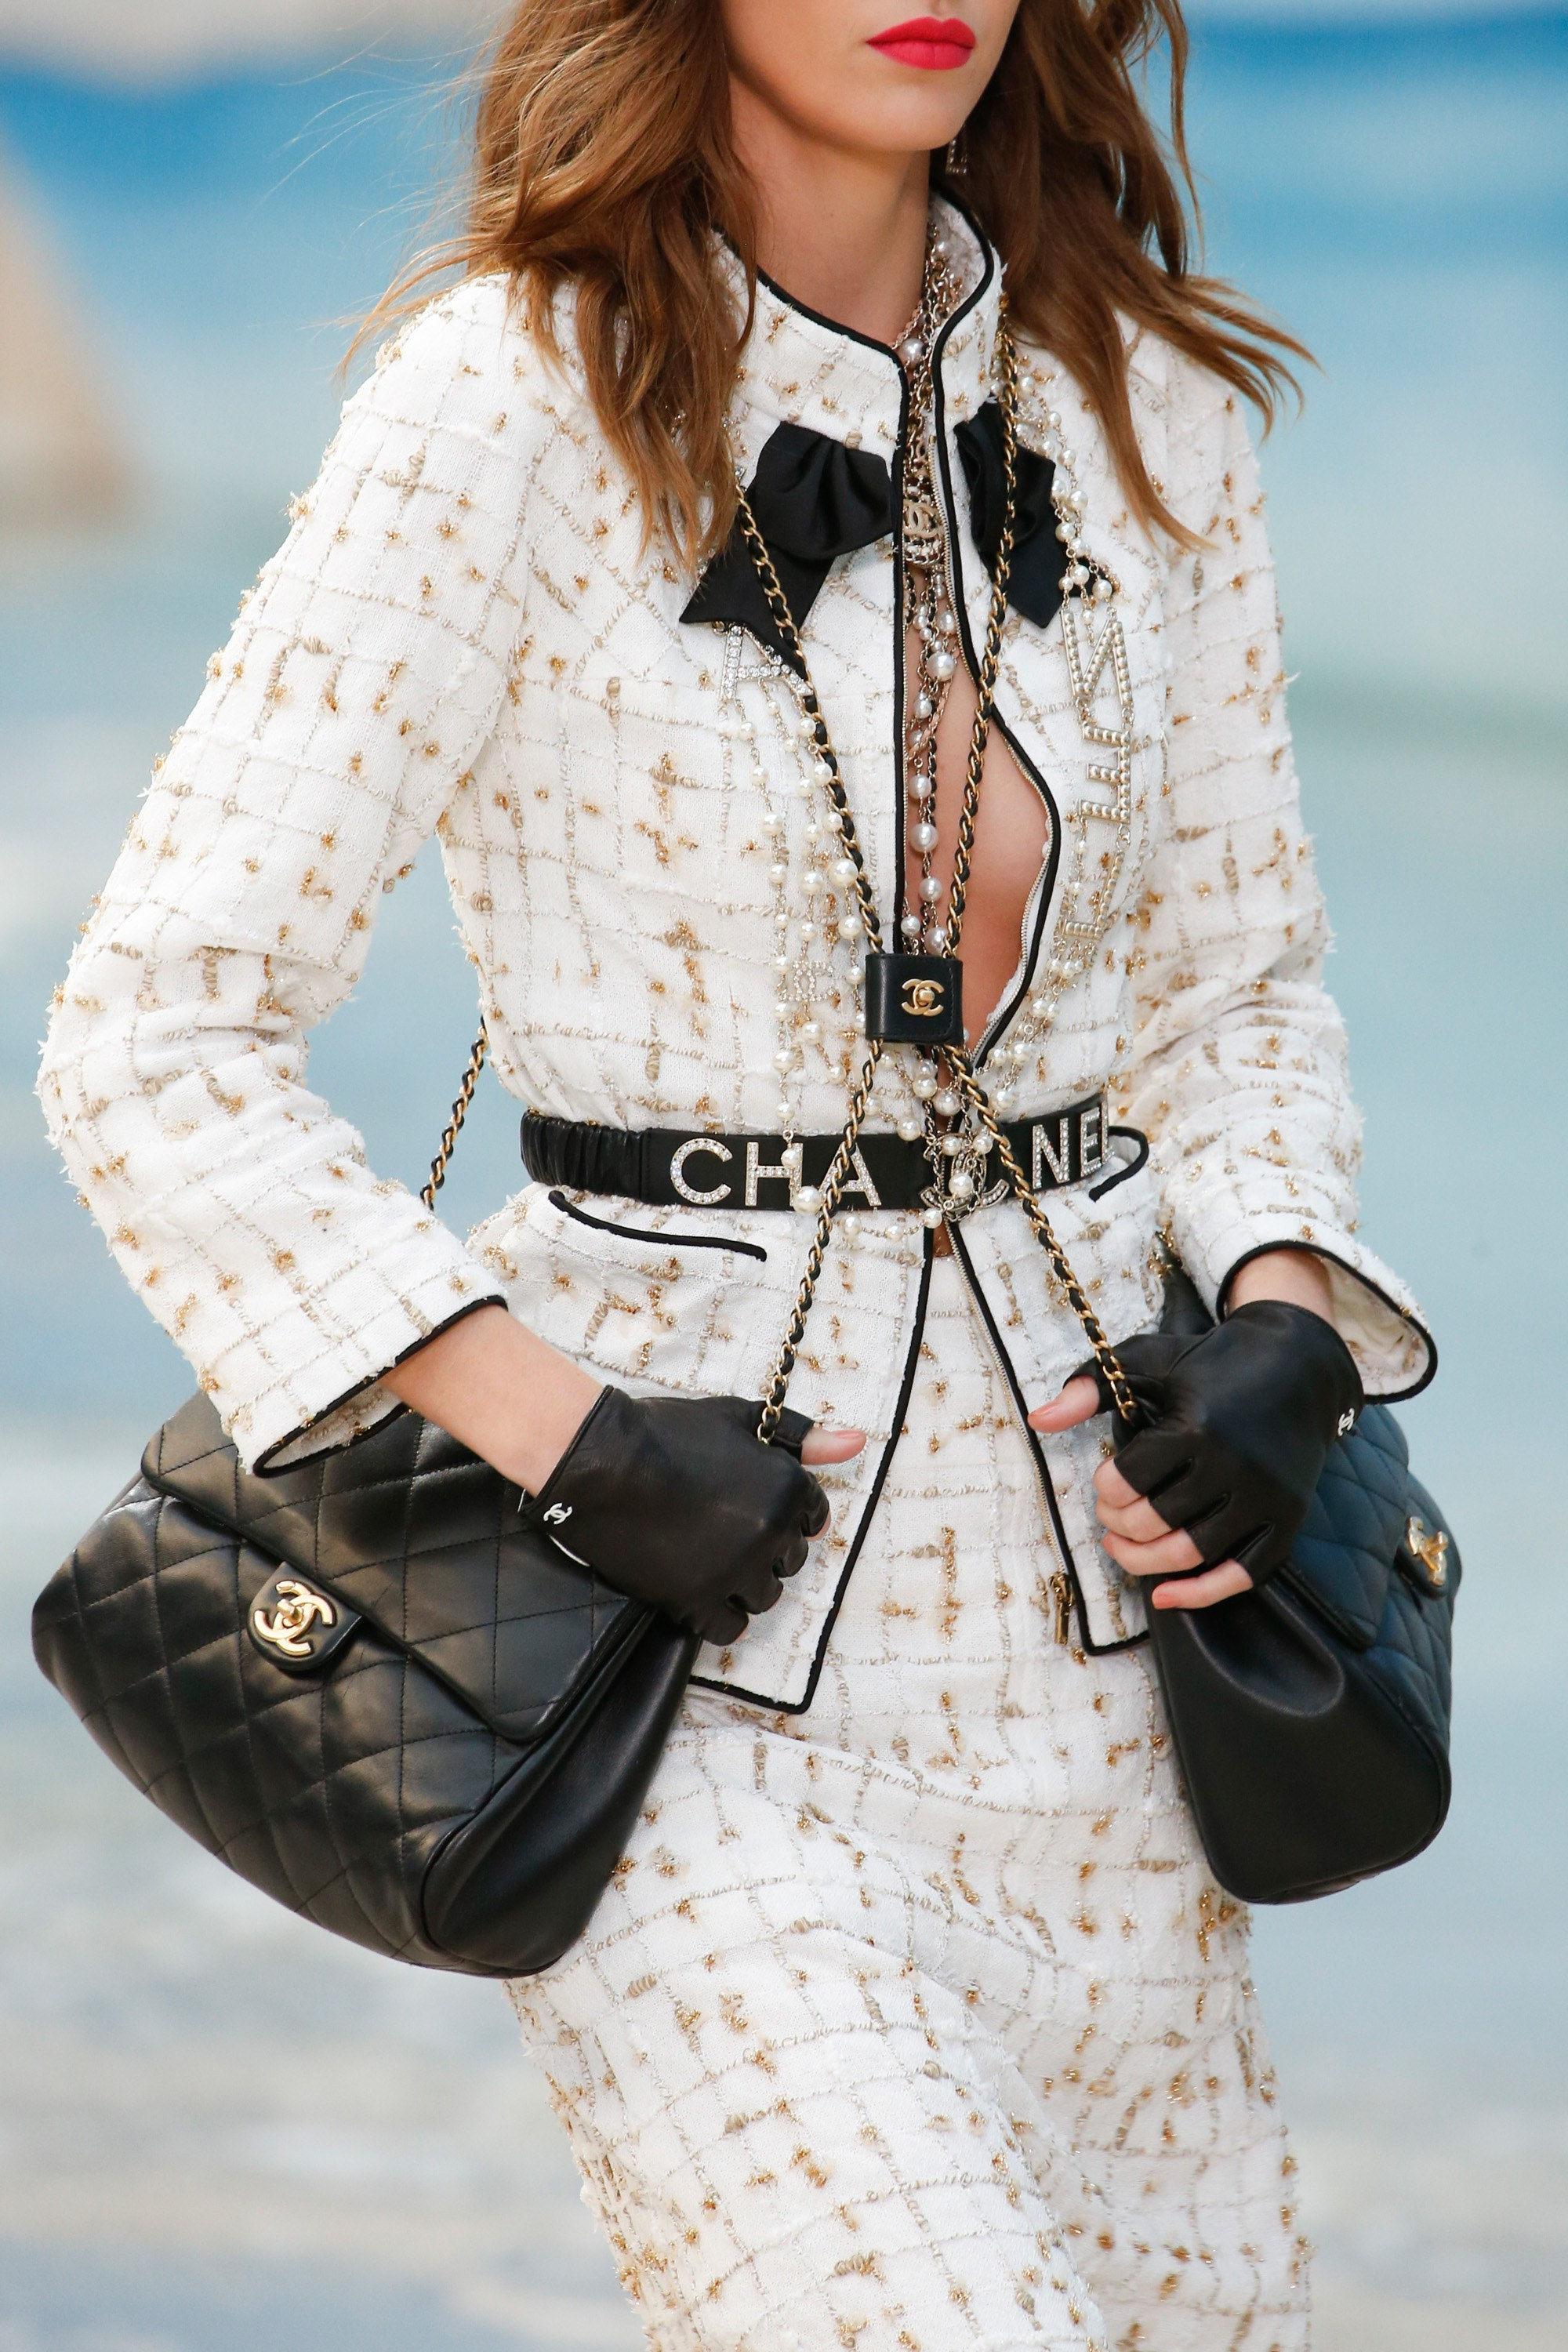 920cd1e8e84 Chanel Spring Summer 2019 Runway Bag Collection - Chanel By The Sea ...